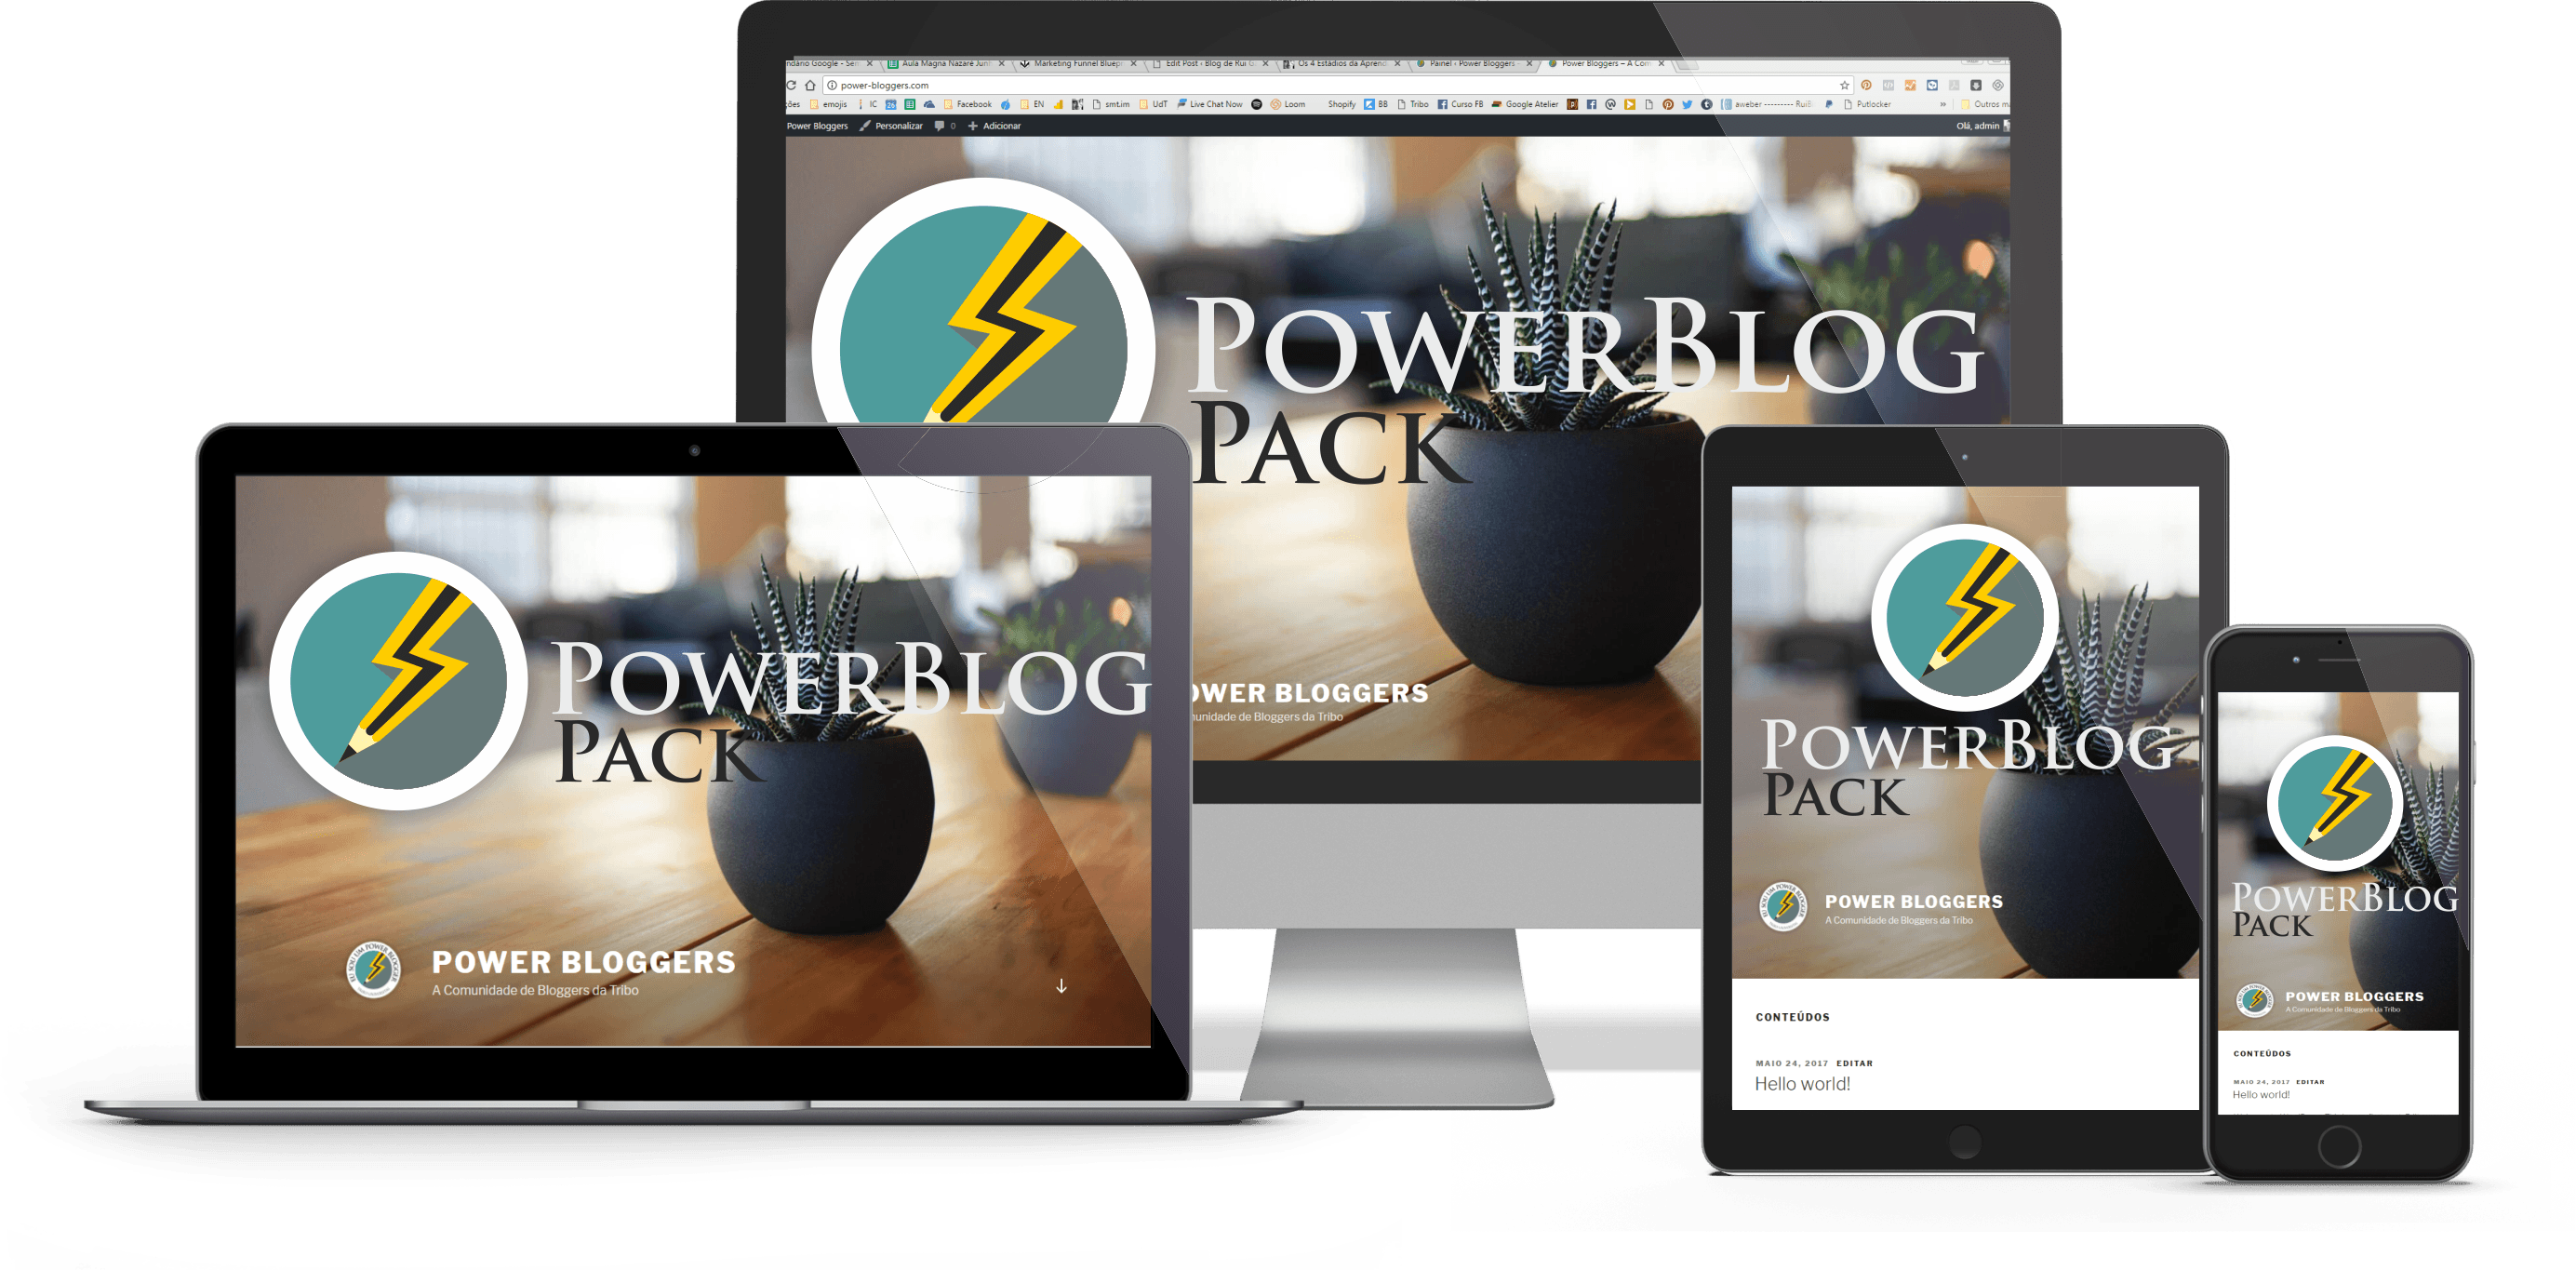 Power Blog Pack